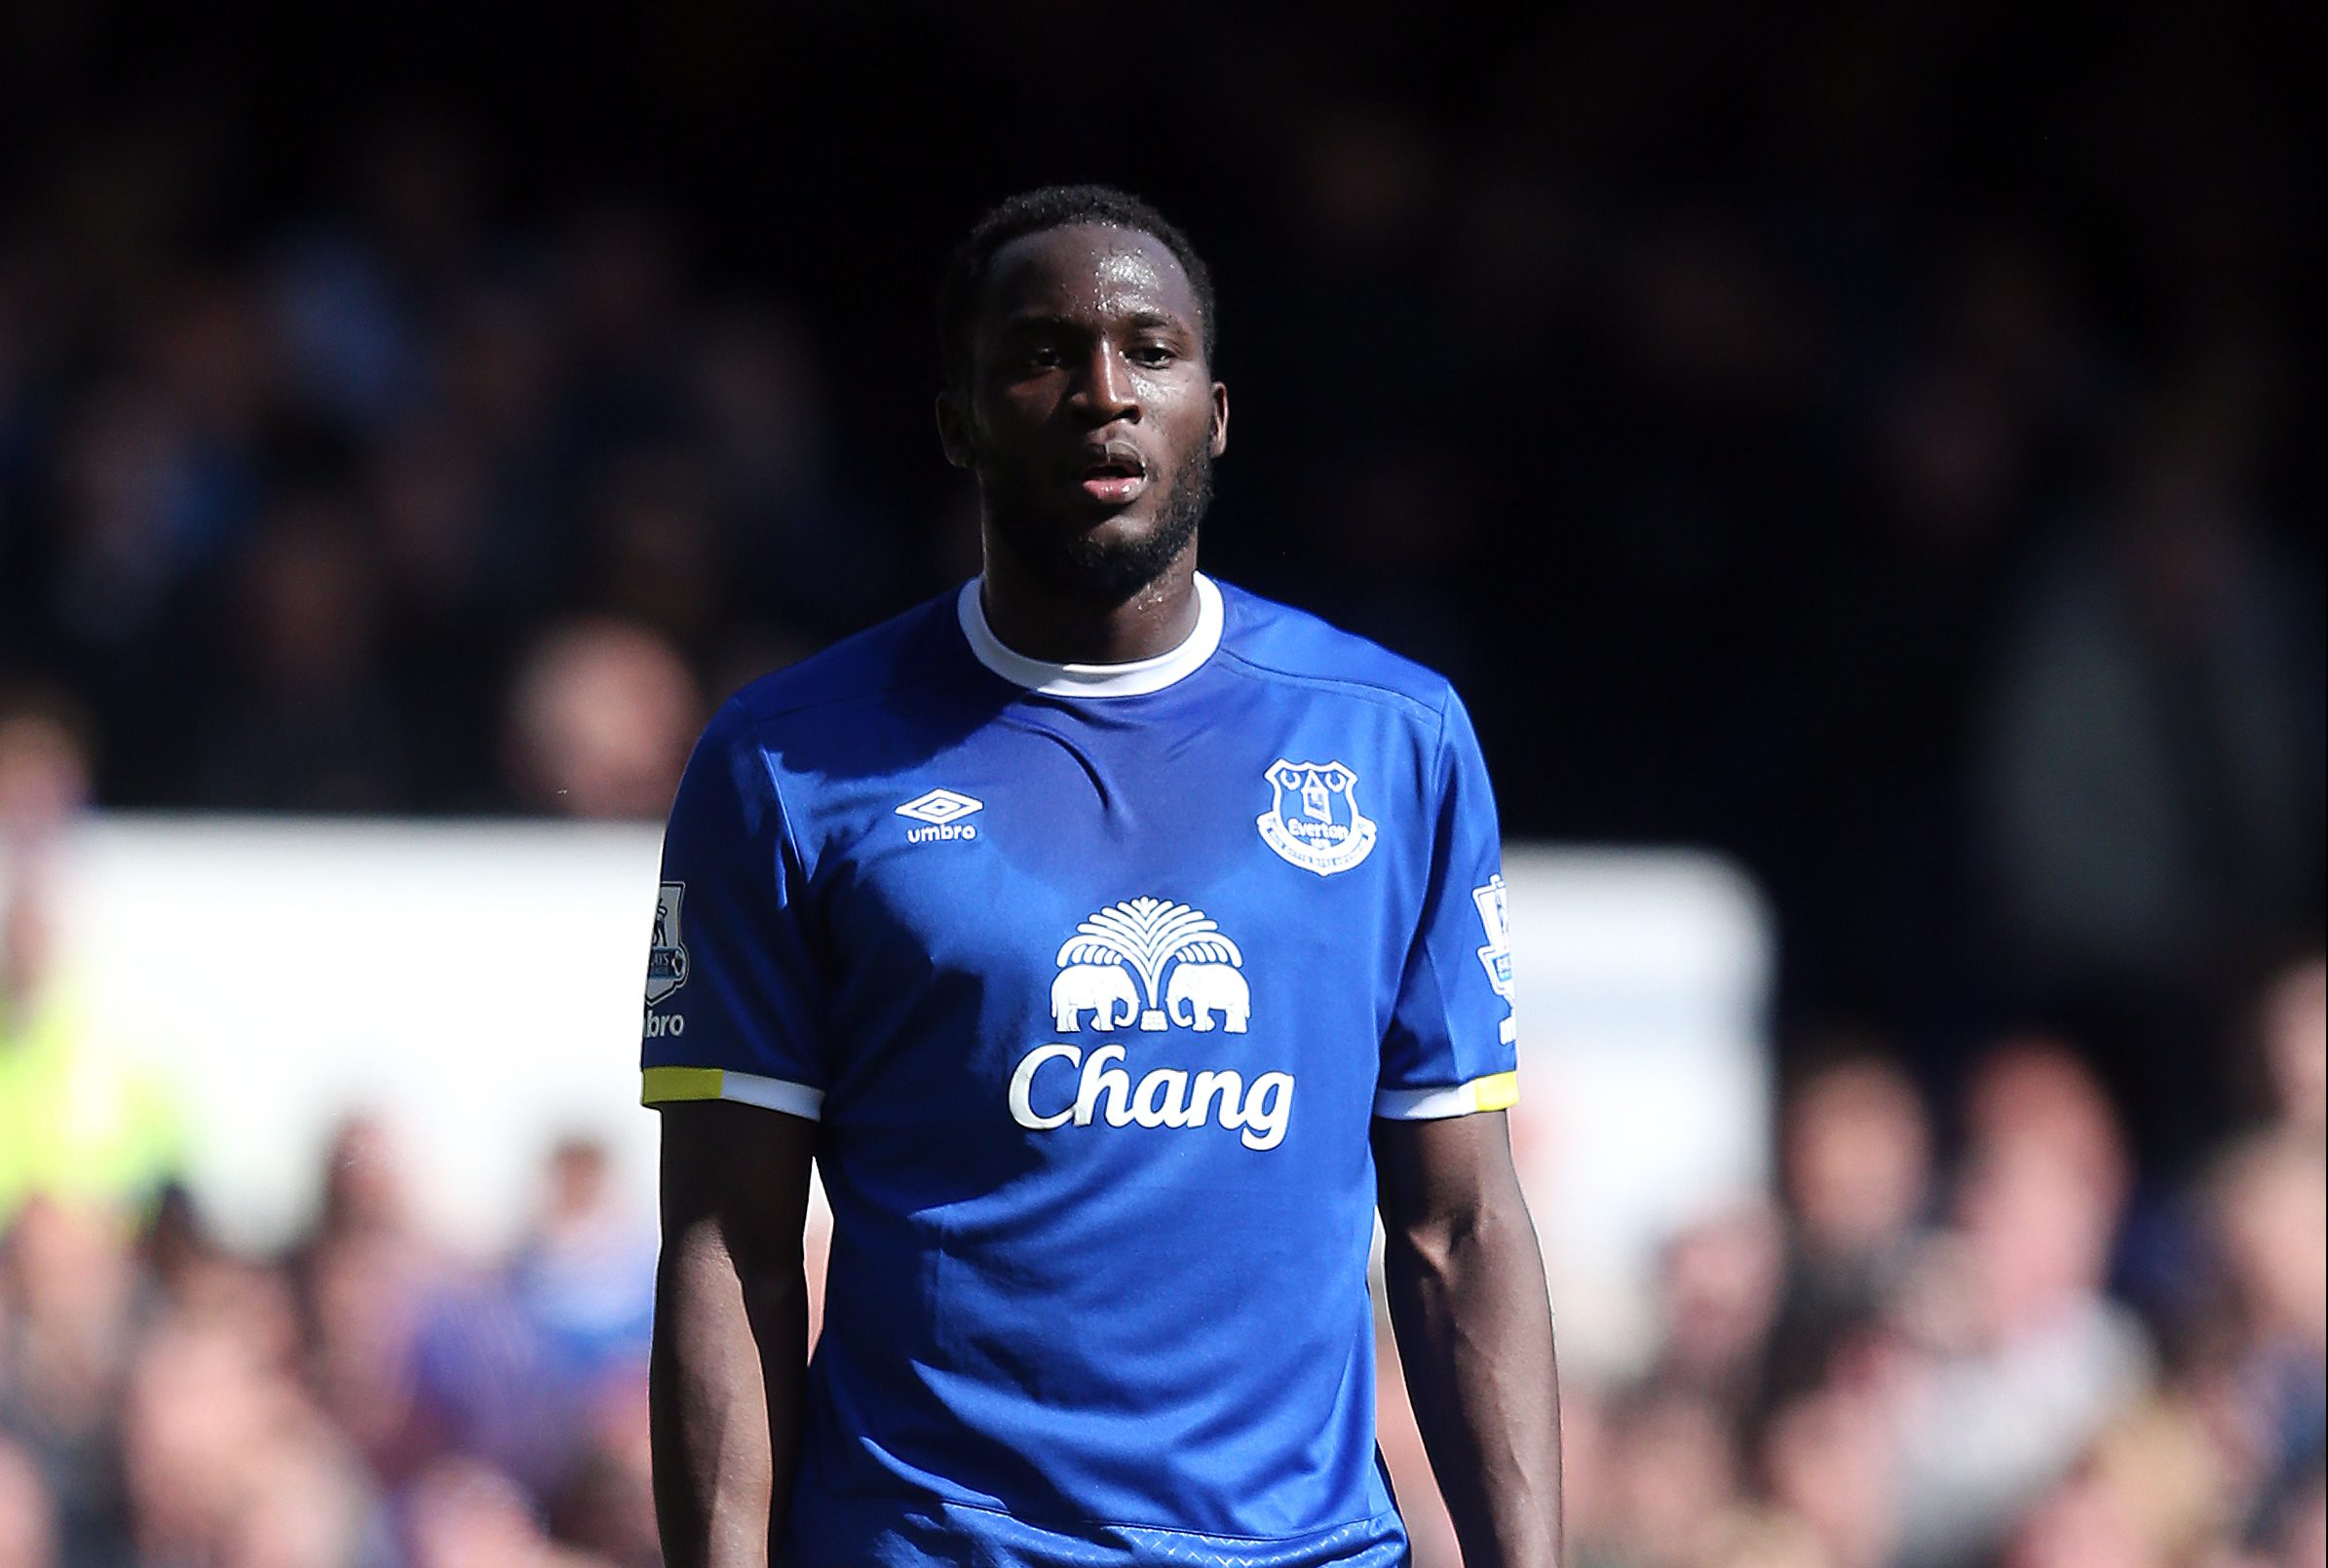 LIVERPOOL, ENGLAND - MAY 15: Romelu Lukaku of Everton in action during the Barclays Premier League match between Everton and Norwich City at Goodison Park on May 15, 2016 in Liverpool, England. (Photo by Chris Brunskill/Getty Images)